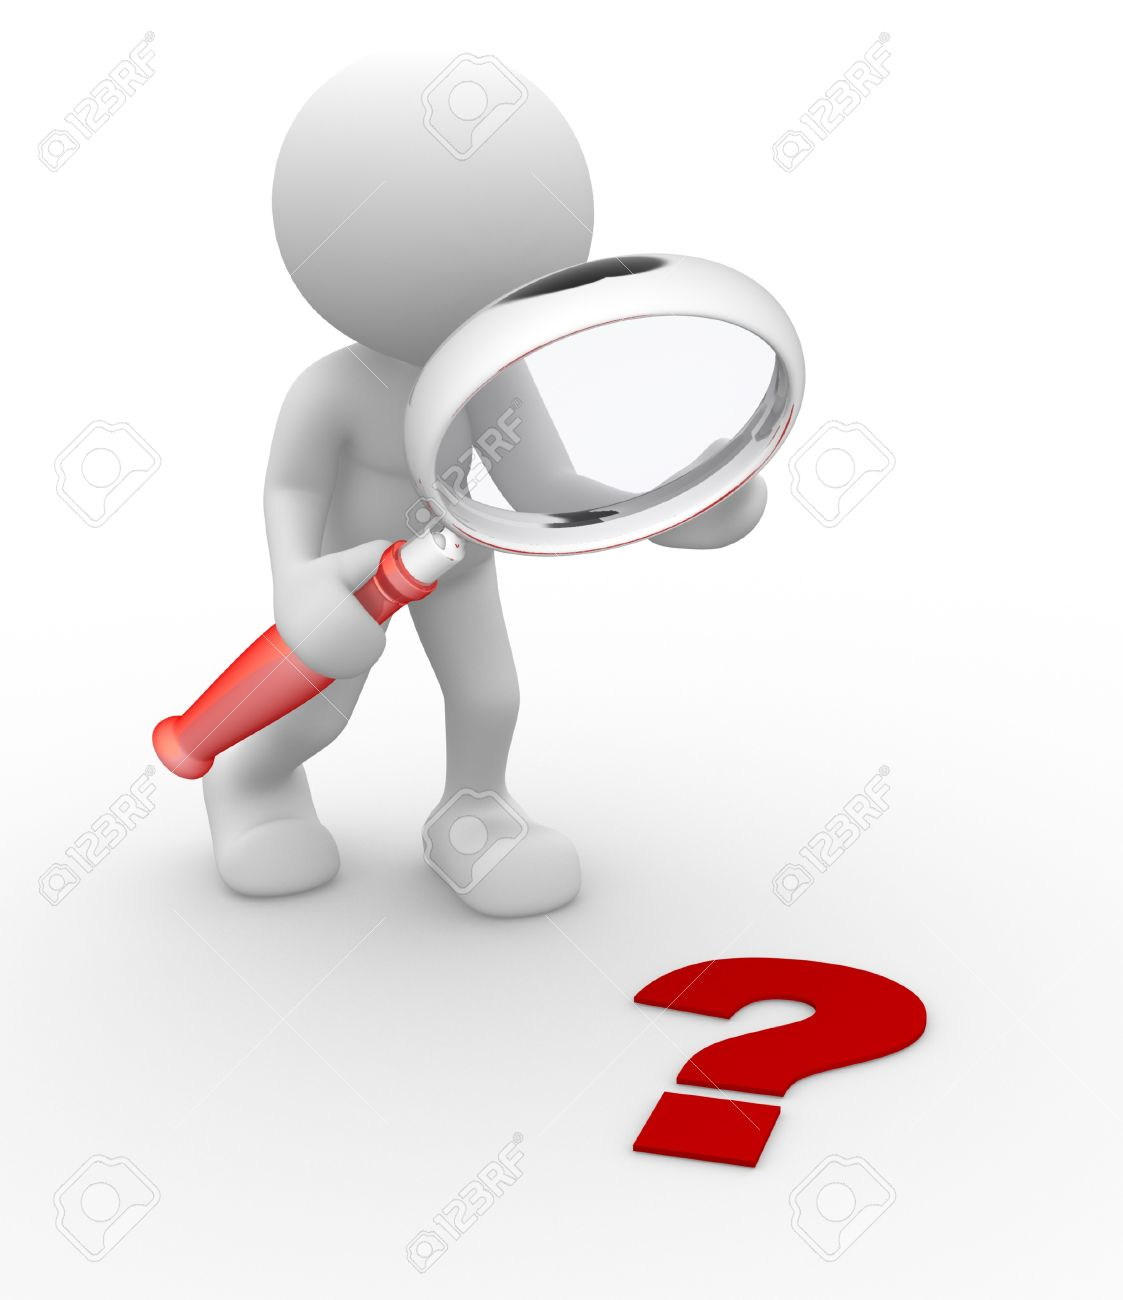 3d person with magnifying glass and question mark stock images image - 3d People Man Person Magnifying Glass Question Mark Red Search Stock Photo 17048595